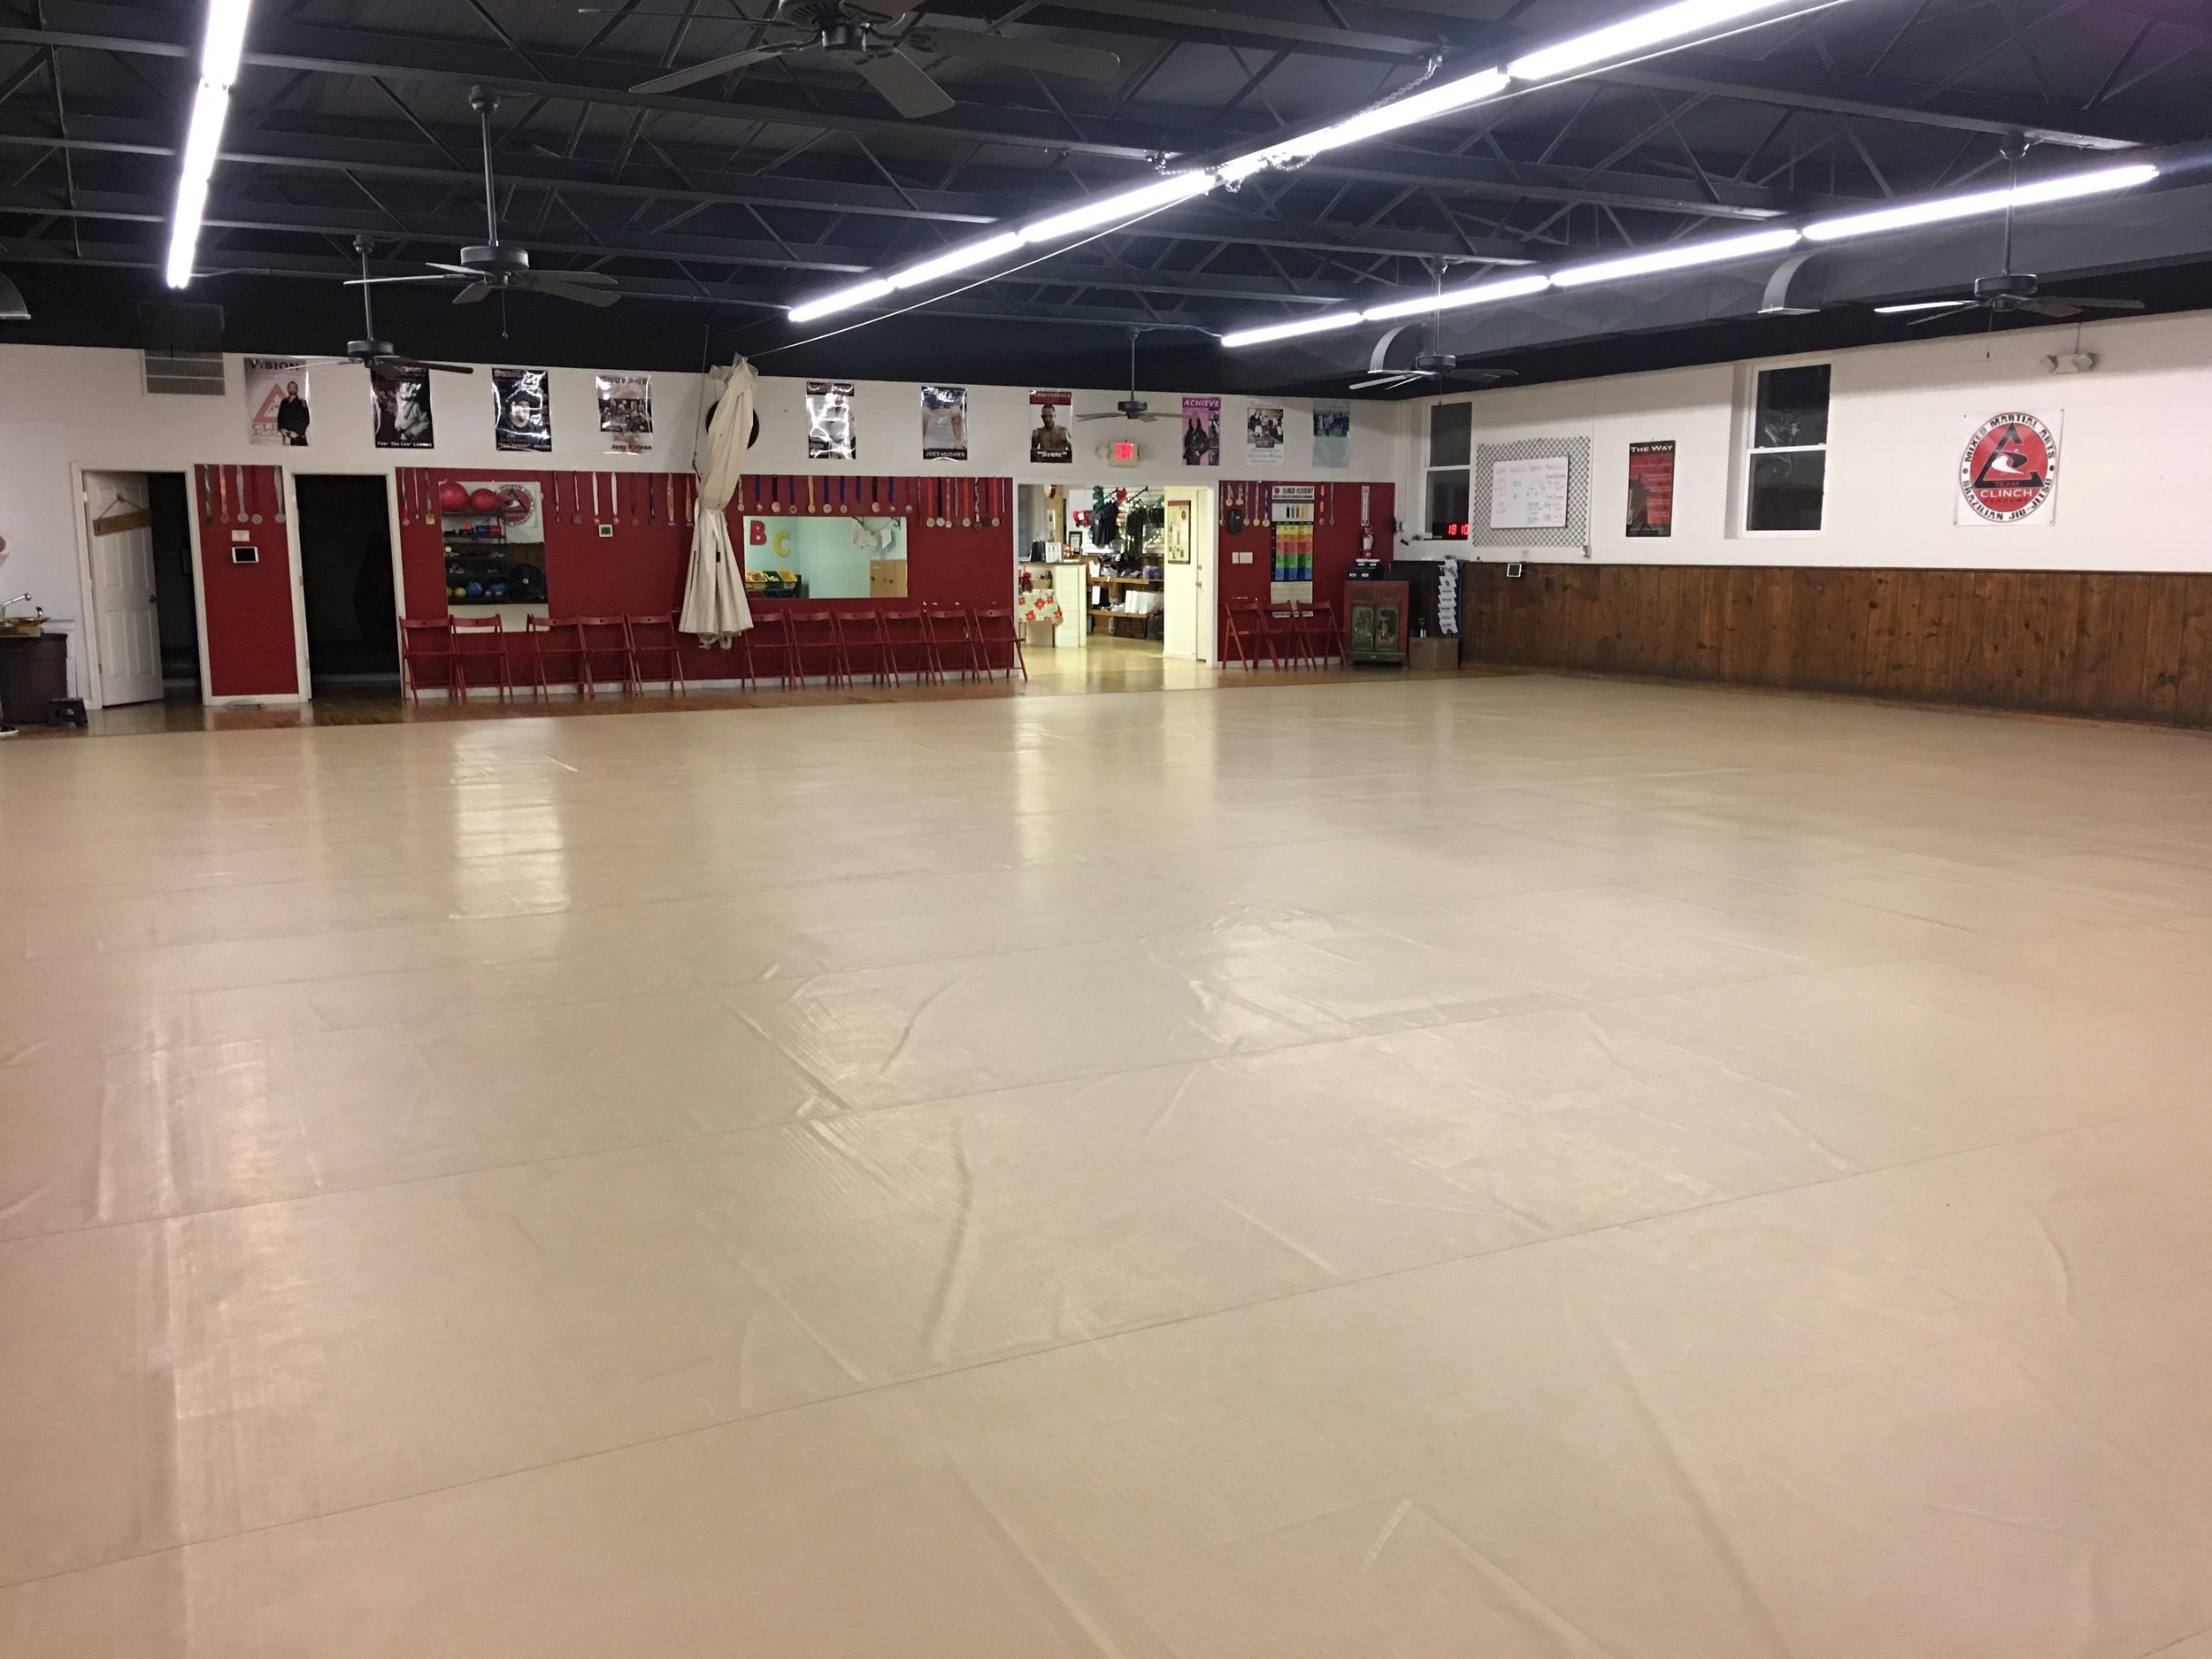 Big Mat Room -